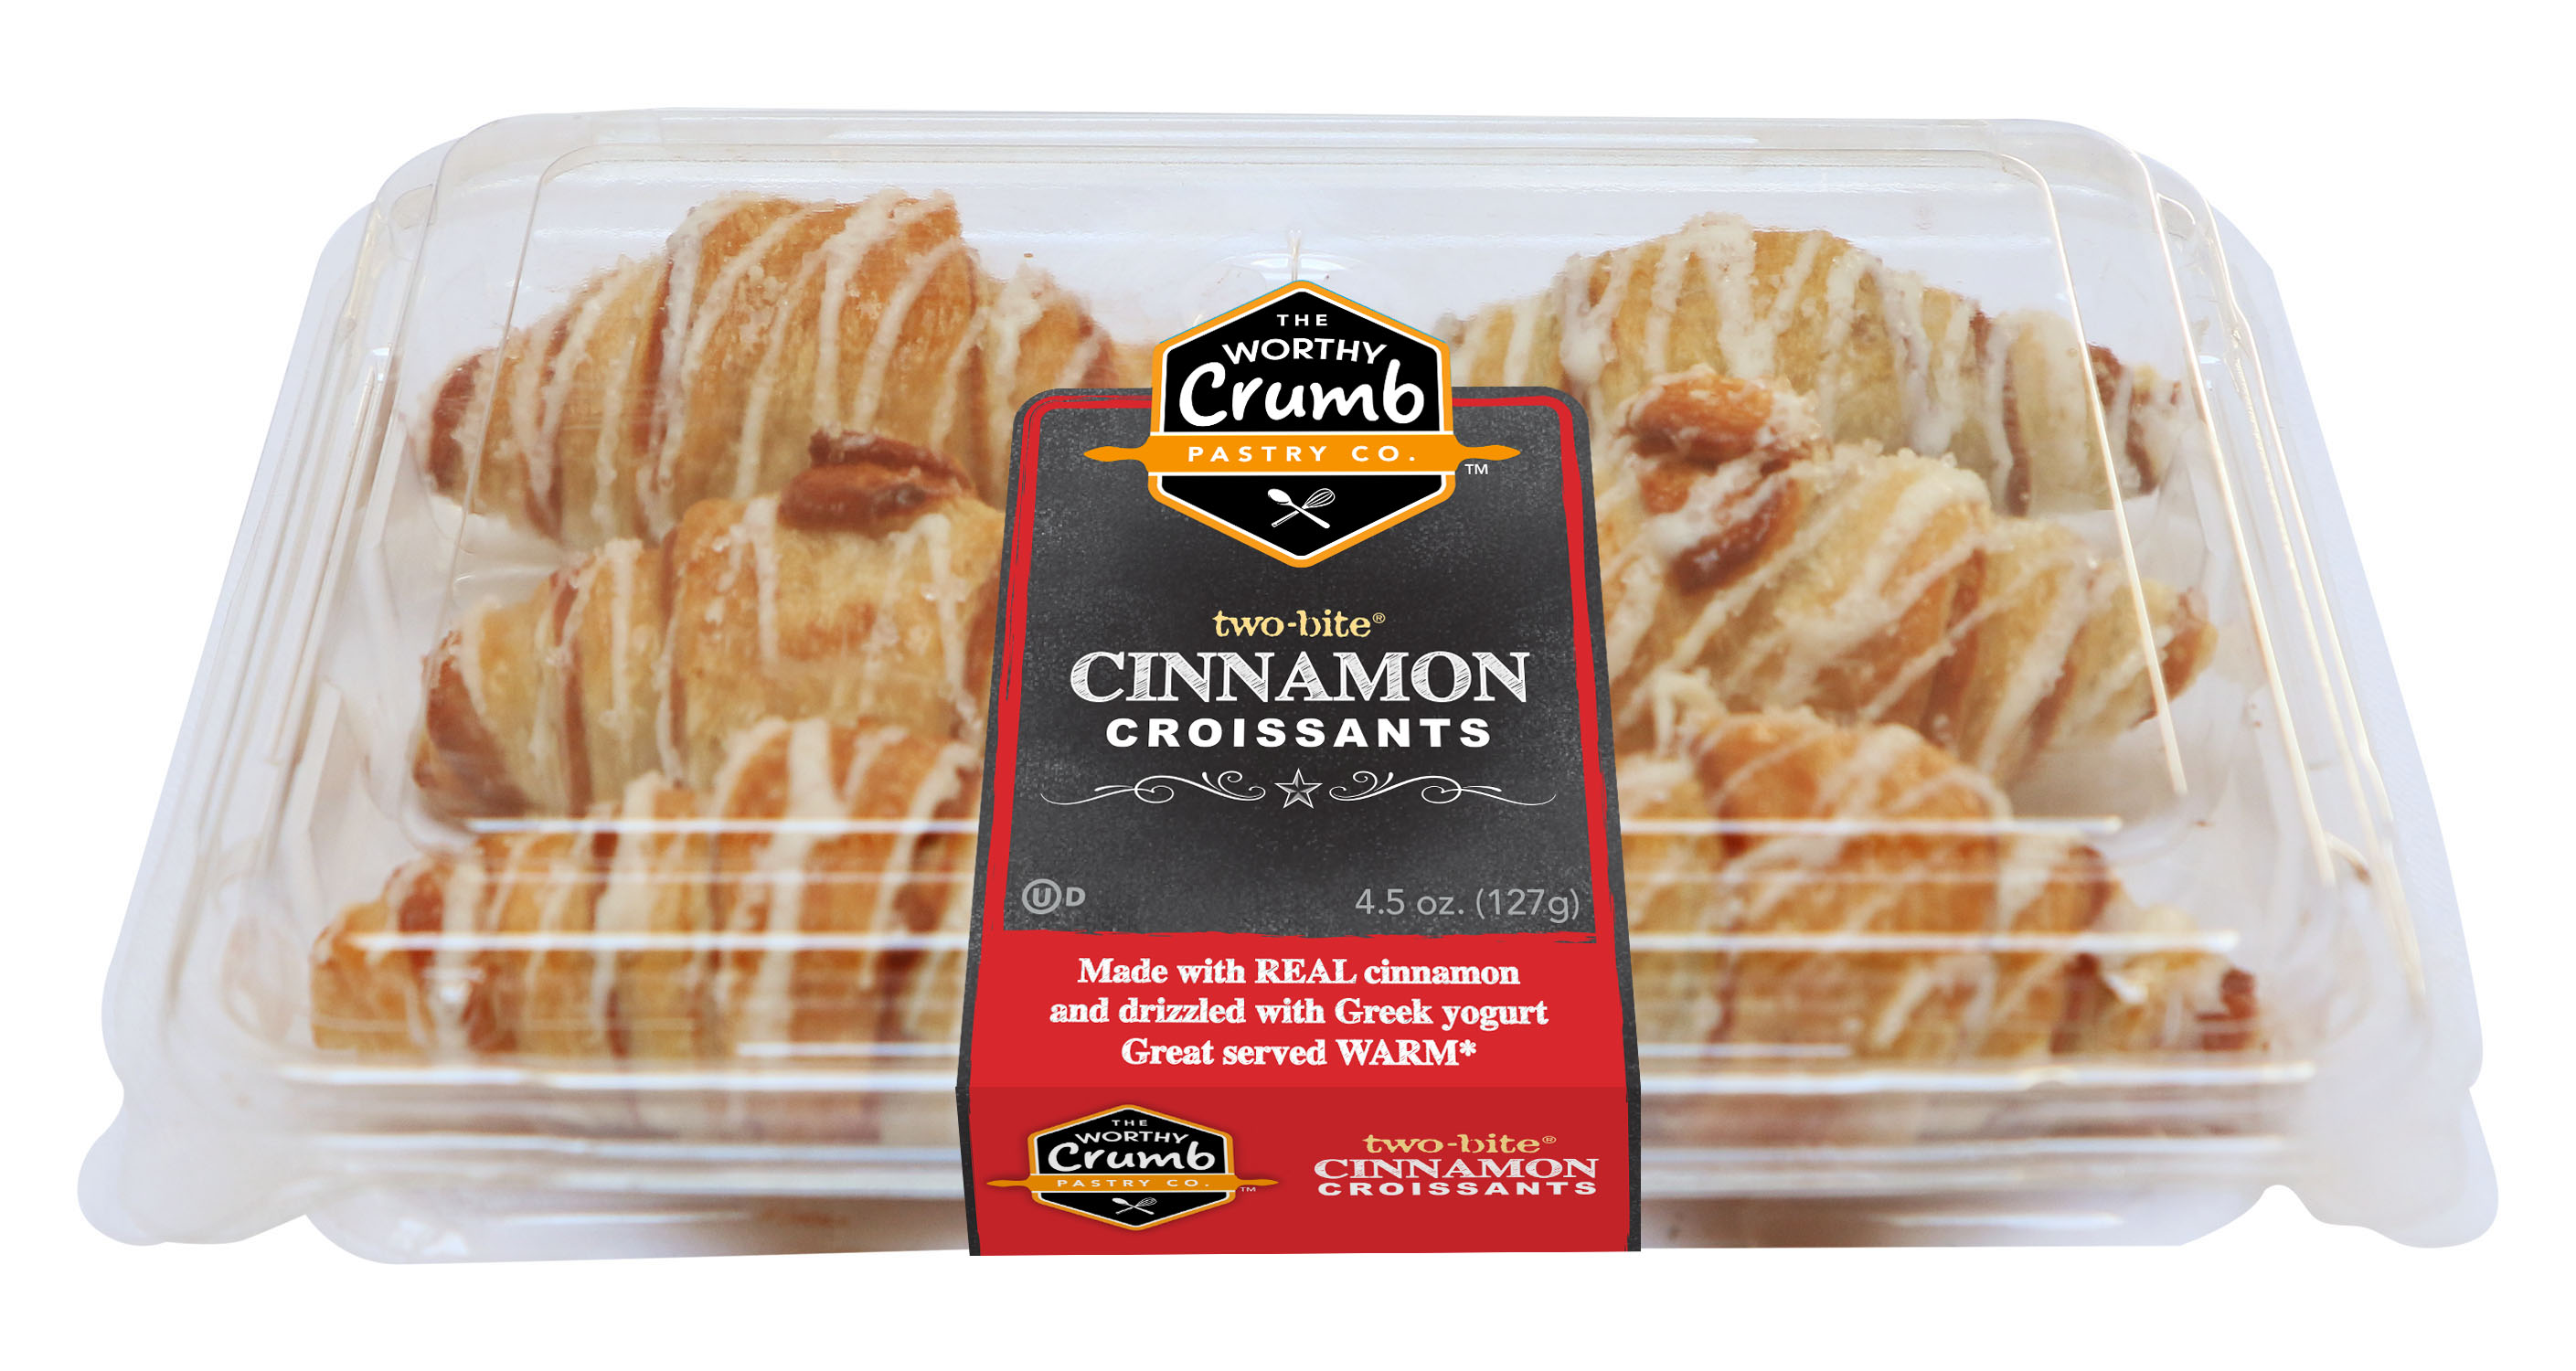 The Worthy Crumb Cinnamon Croissants - 6 packs